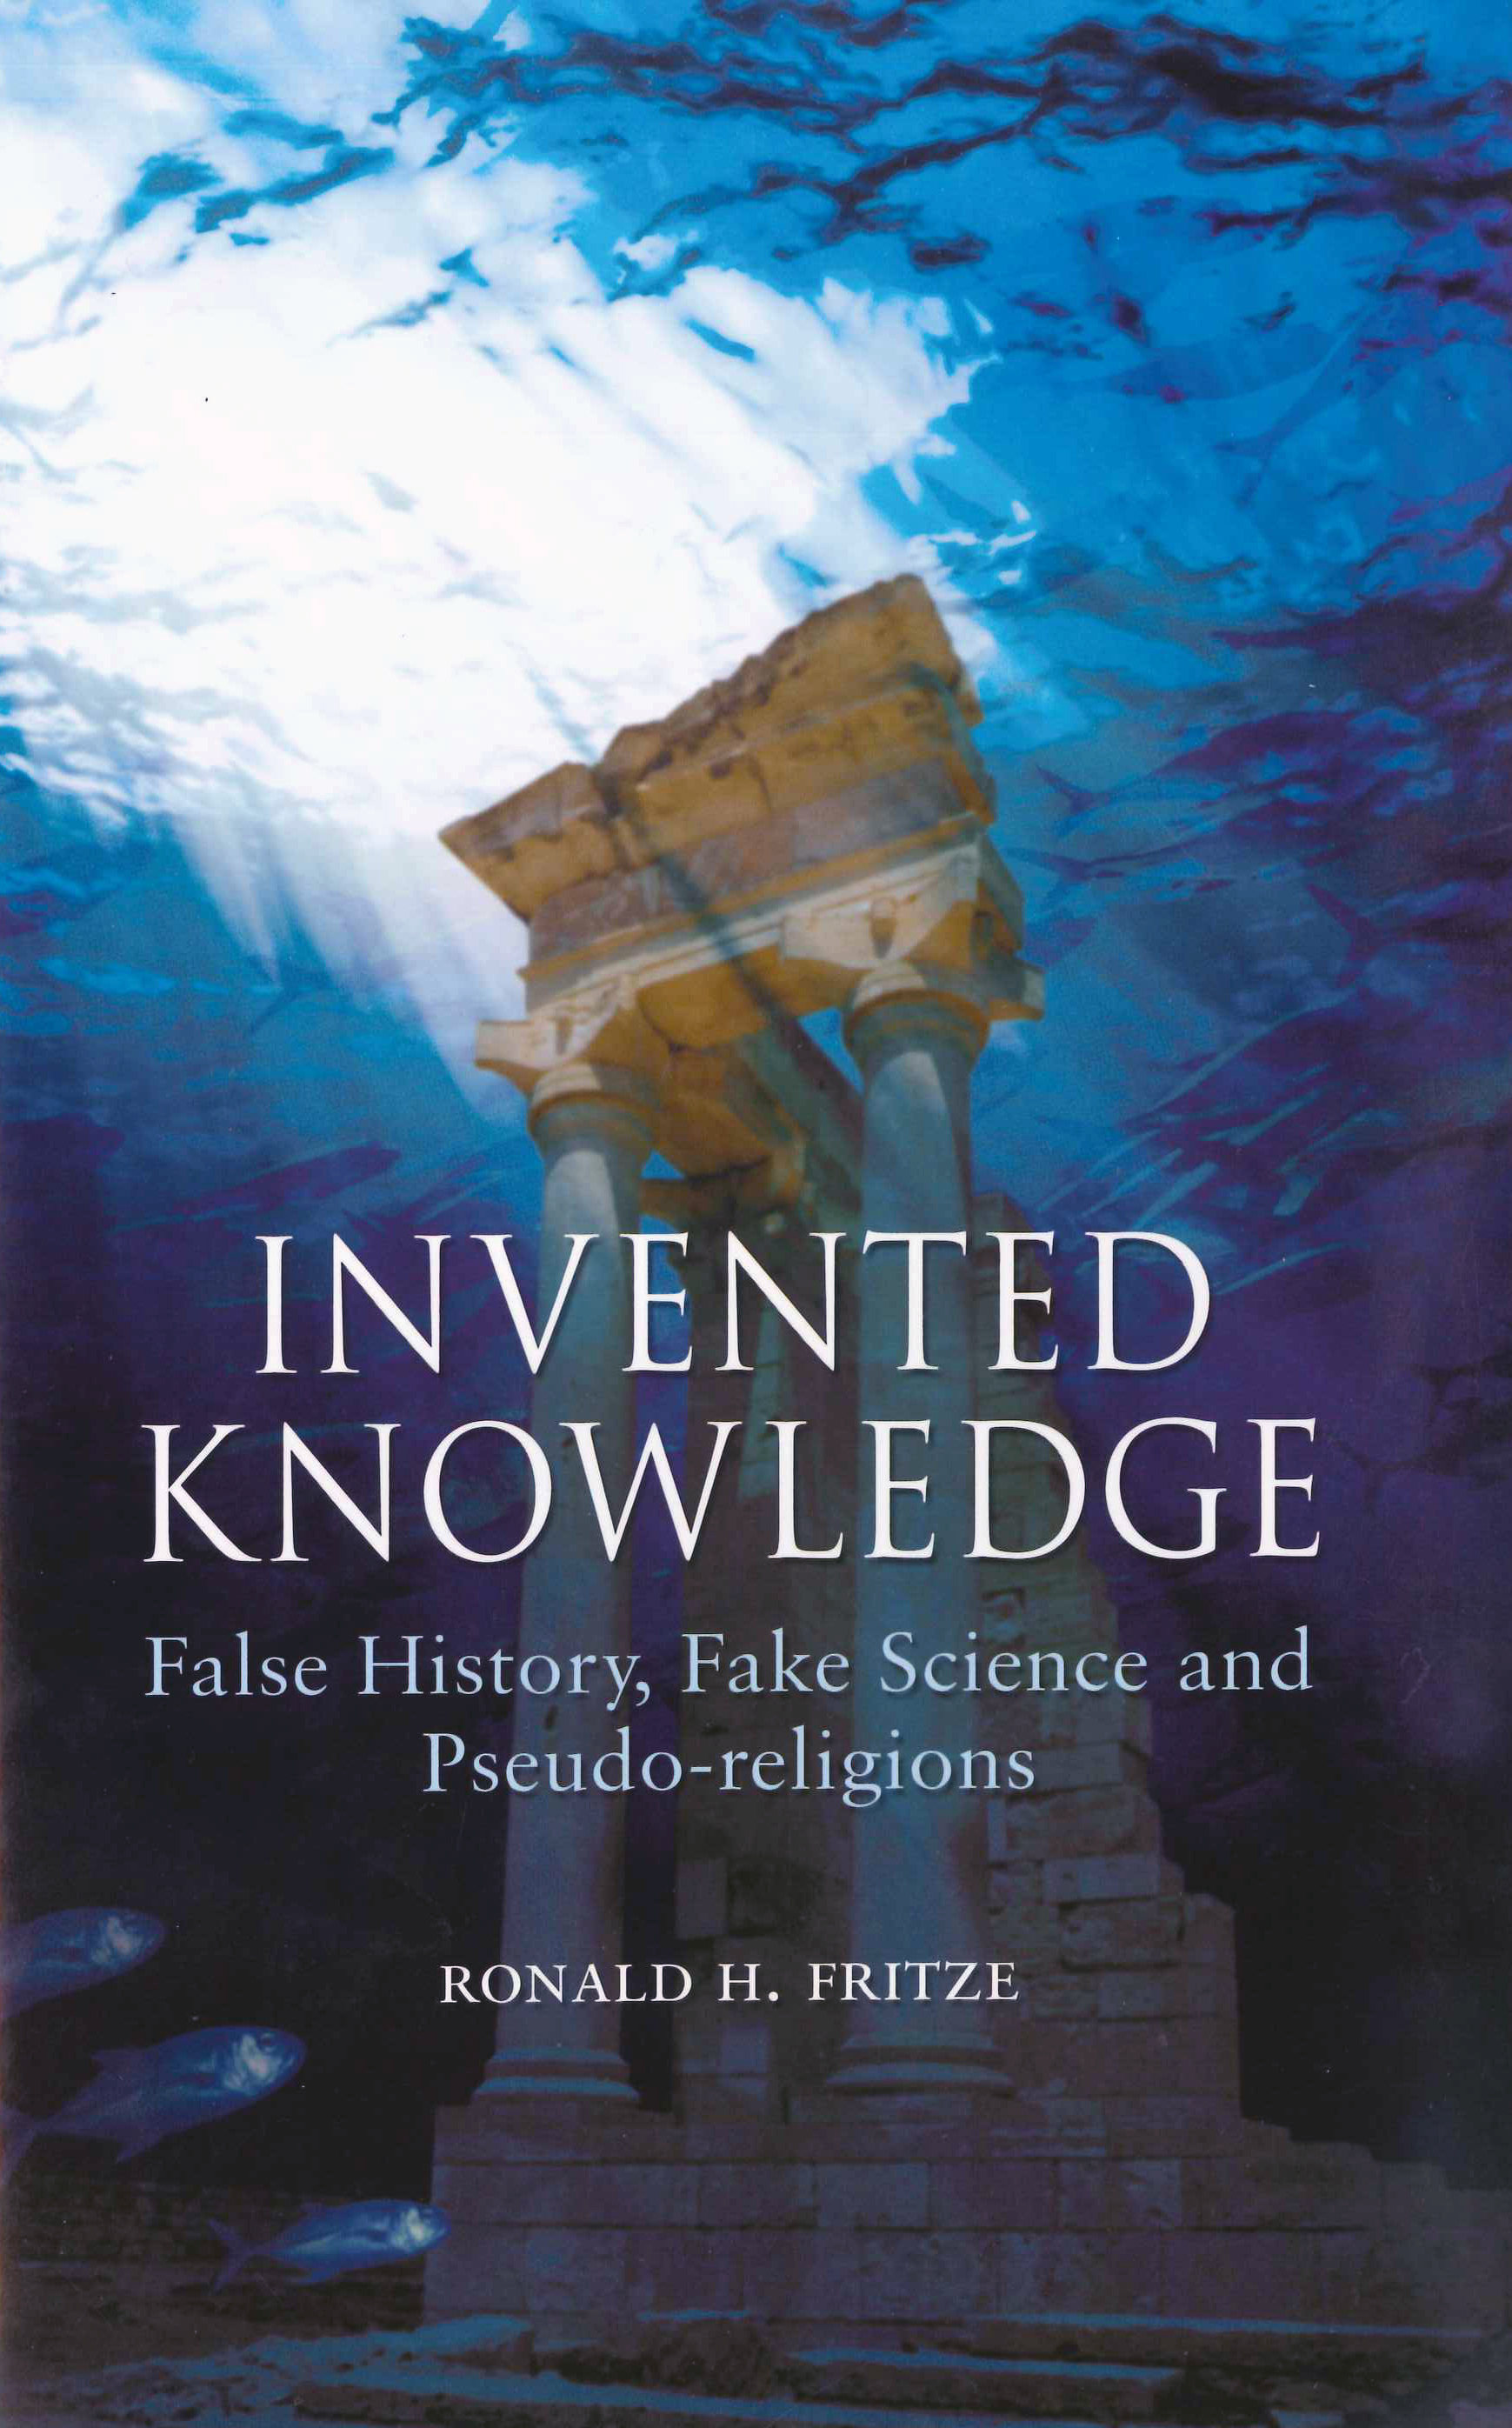 Invented Knowledge, by Ronald Fritze